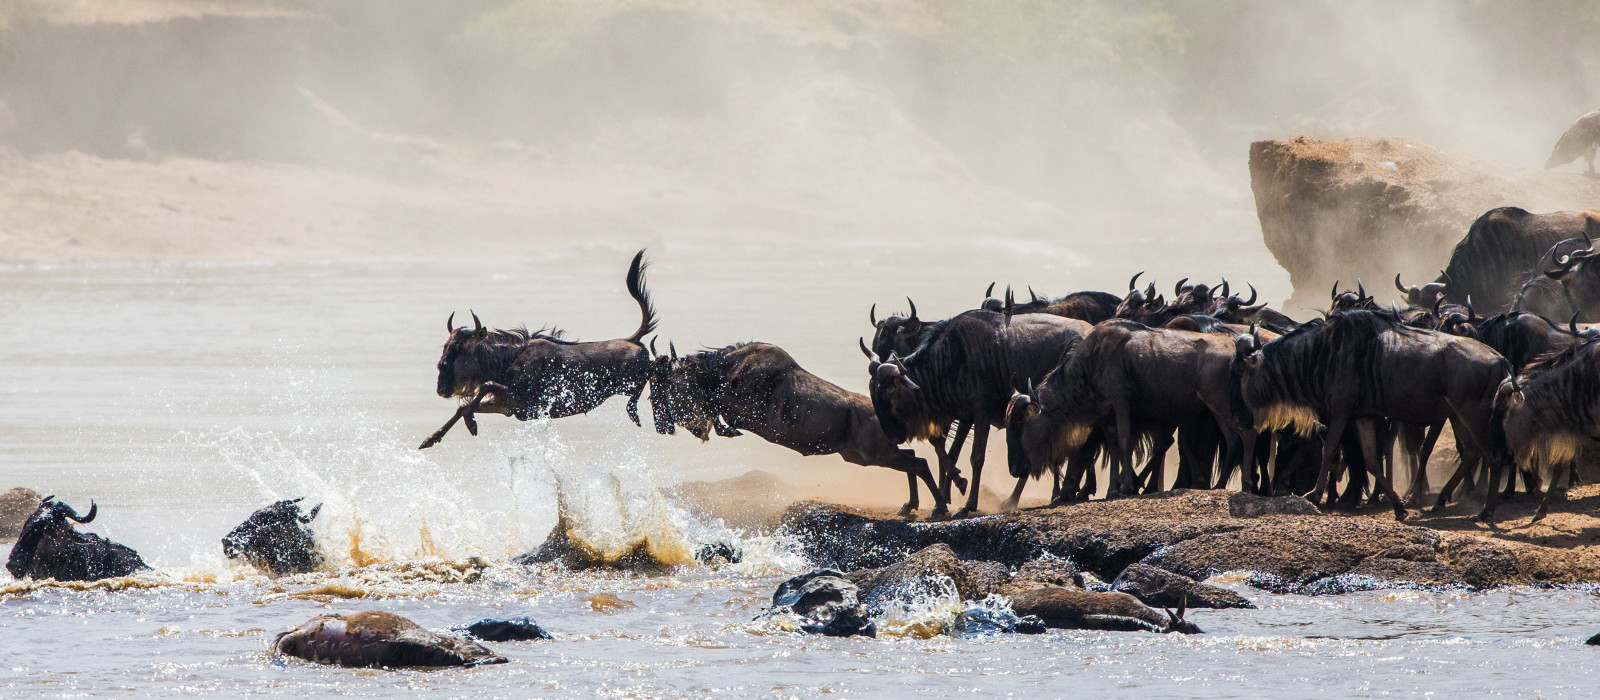 Wildebeest crossing the Mara River during the annual great migration between Tansania and the Masai Mara in Kenya, Africa